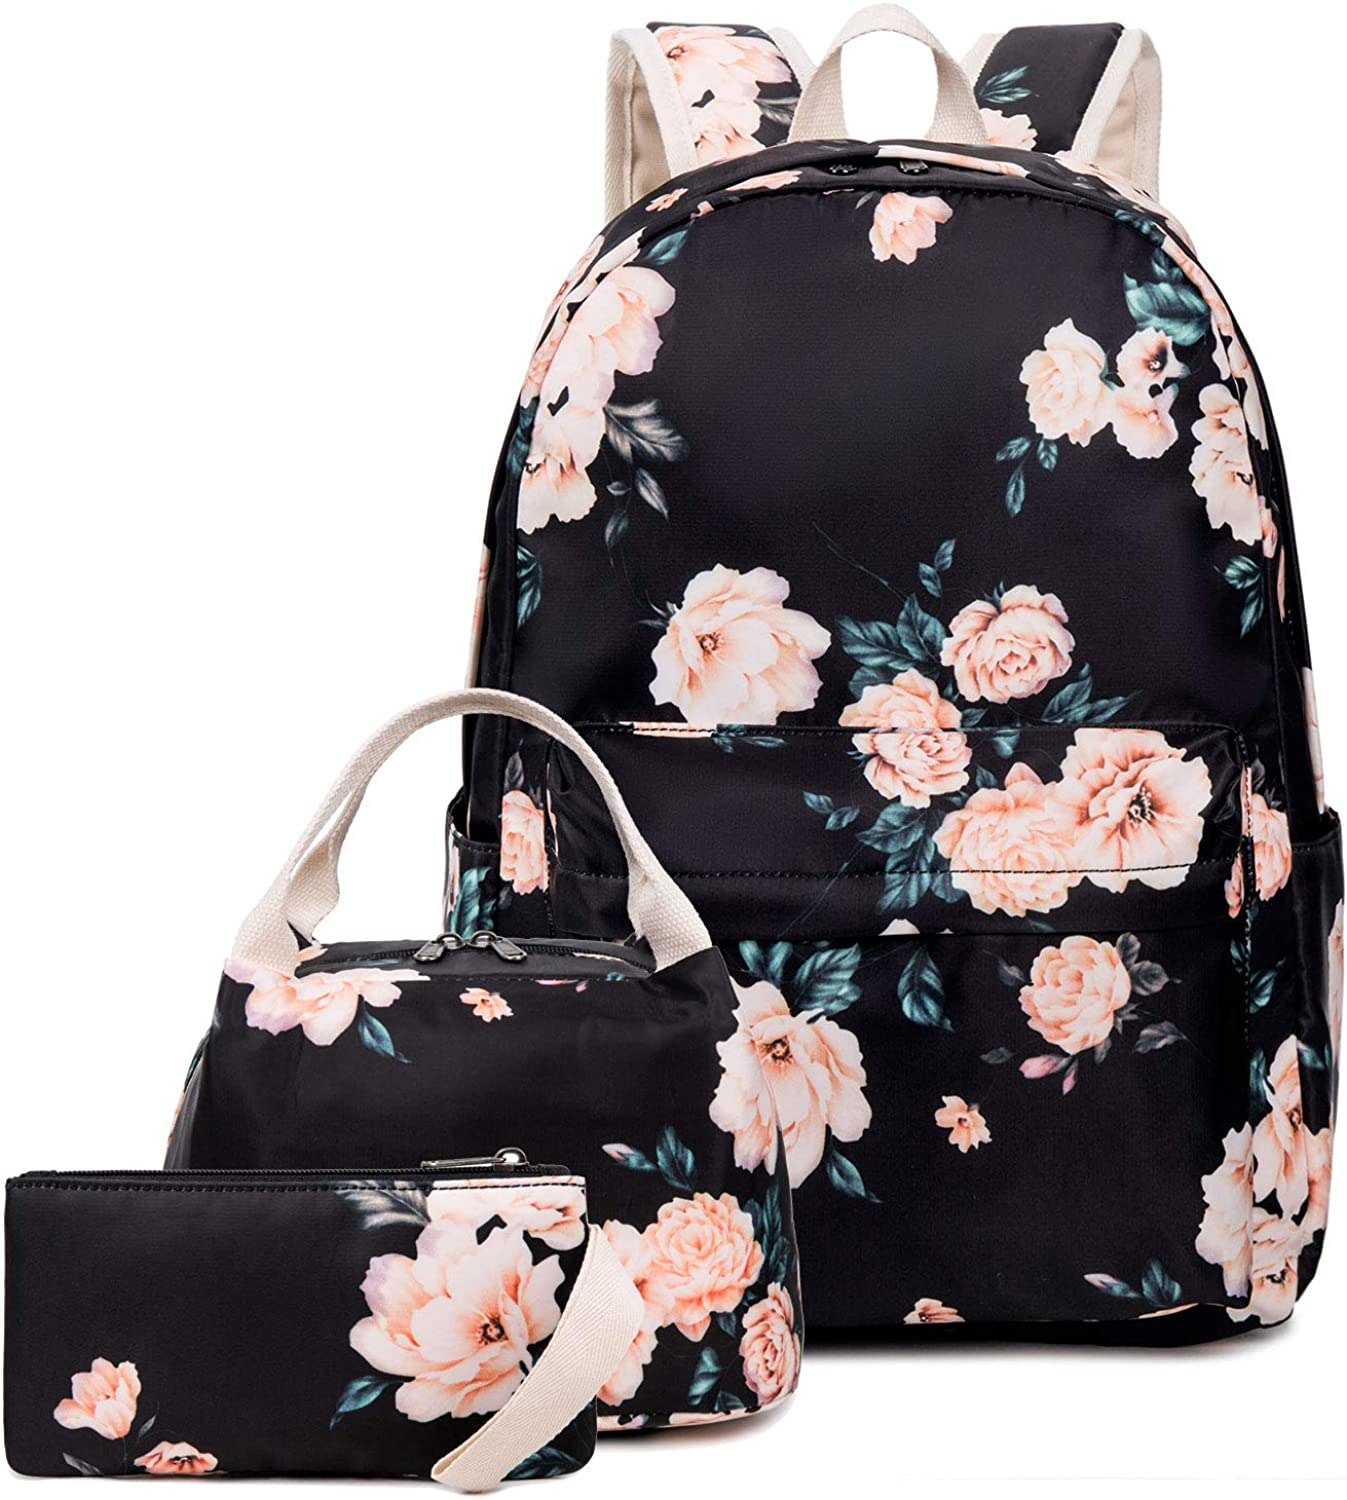 Goodking Floral Canvas Backpack for Women Teen Girls School Rucksack College Bookbag Lady Travel Backpack 14Inch Laptop Bag